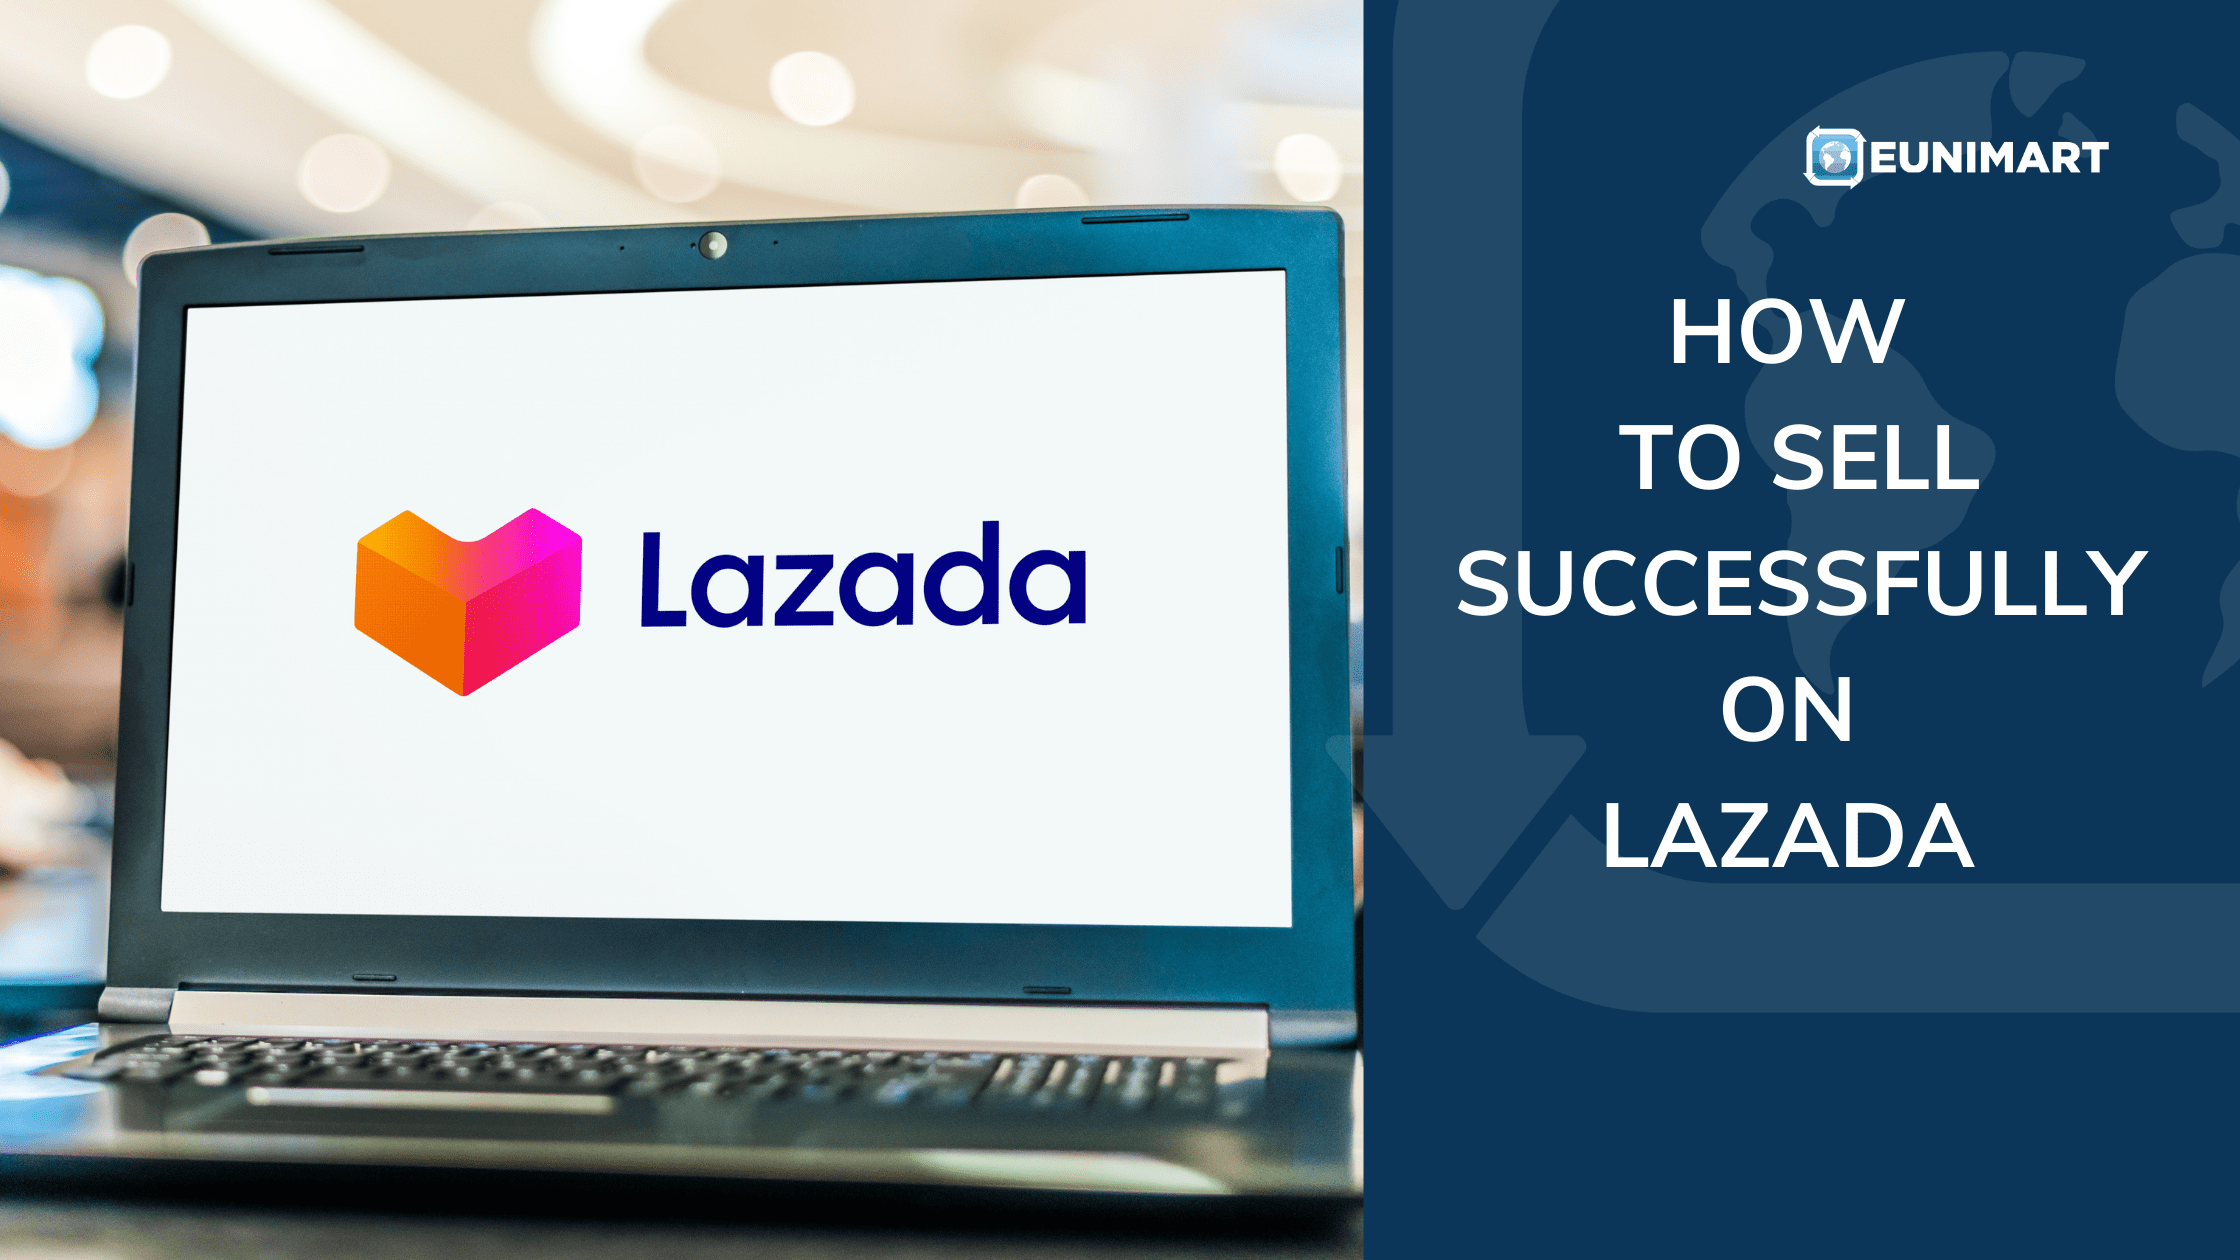 How to sell successfully on Lazada